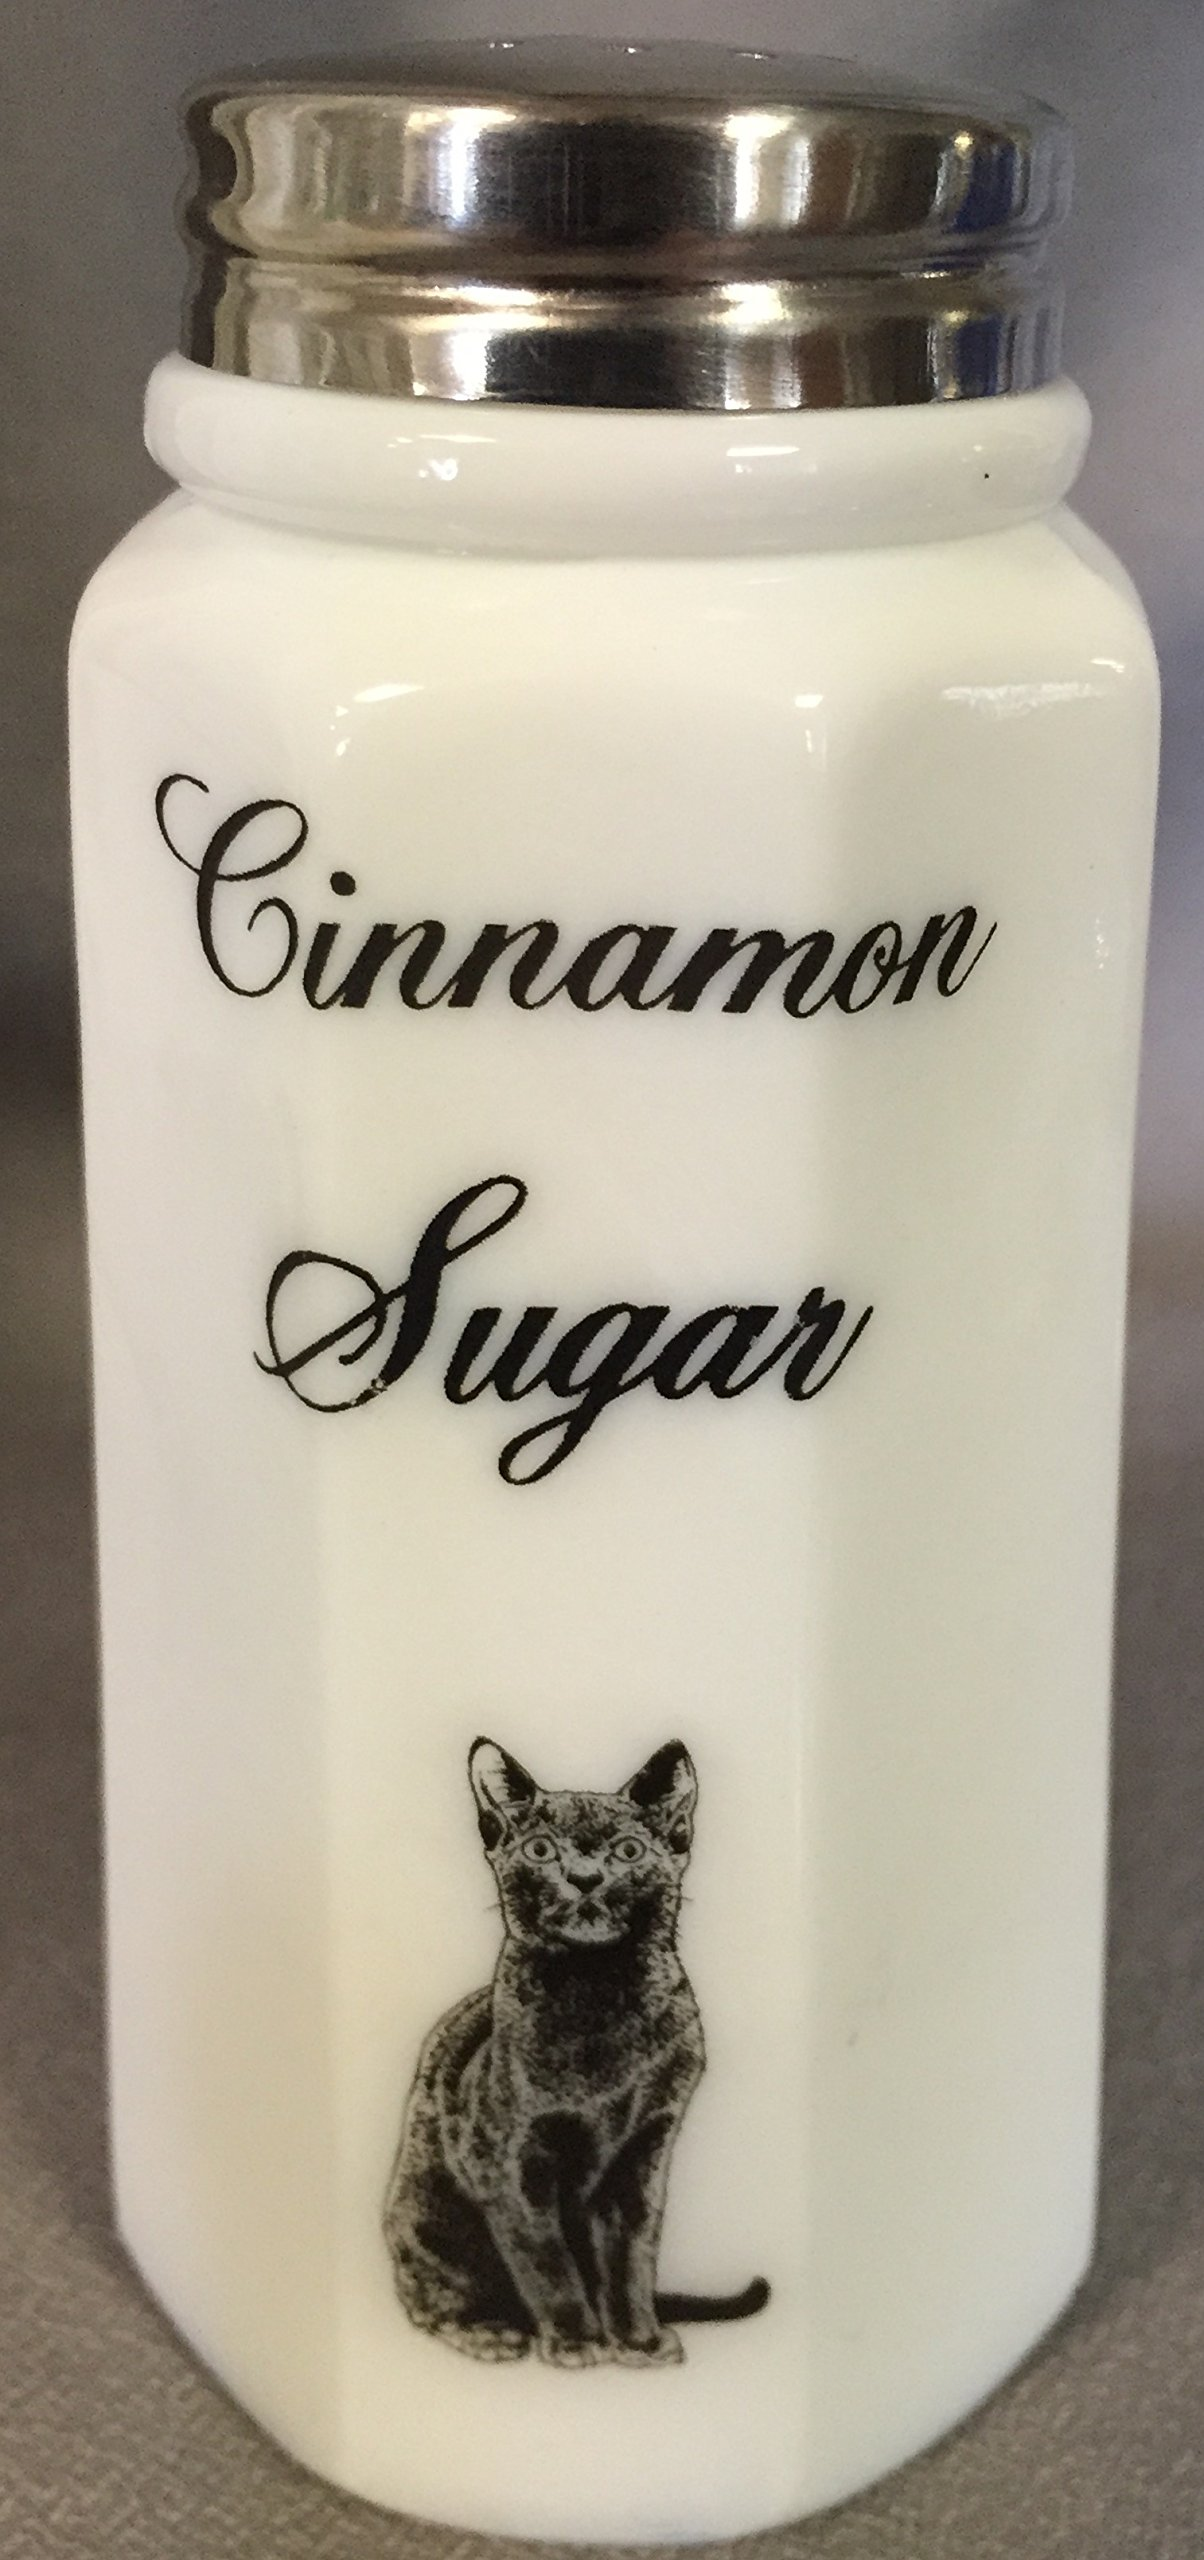 Cinnamon Sugar Shaker - Paneled - Mosser - American Made (Milk w/Black Cat)